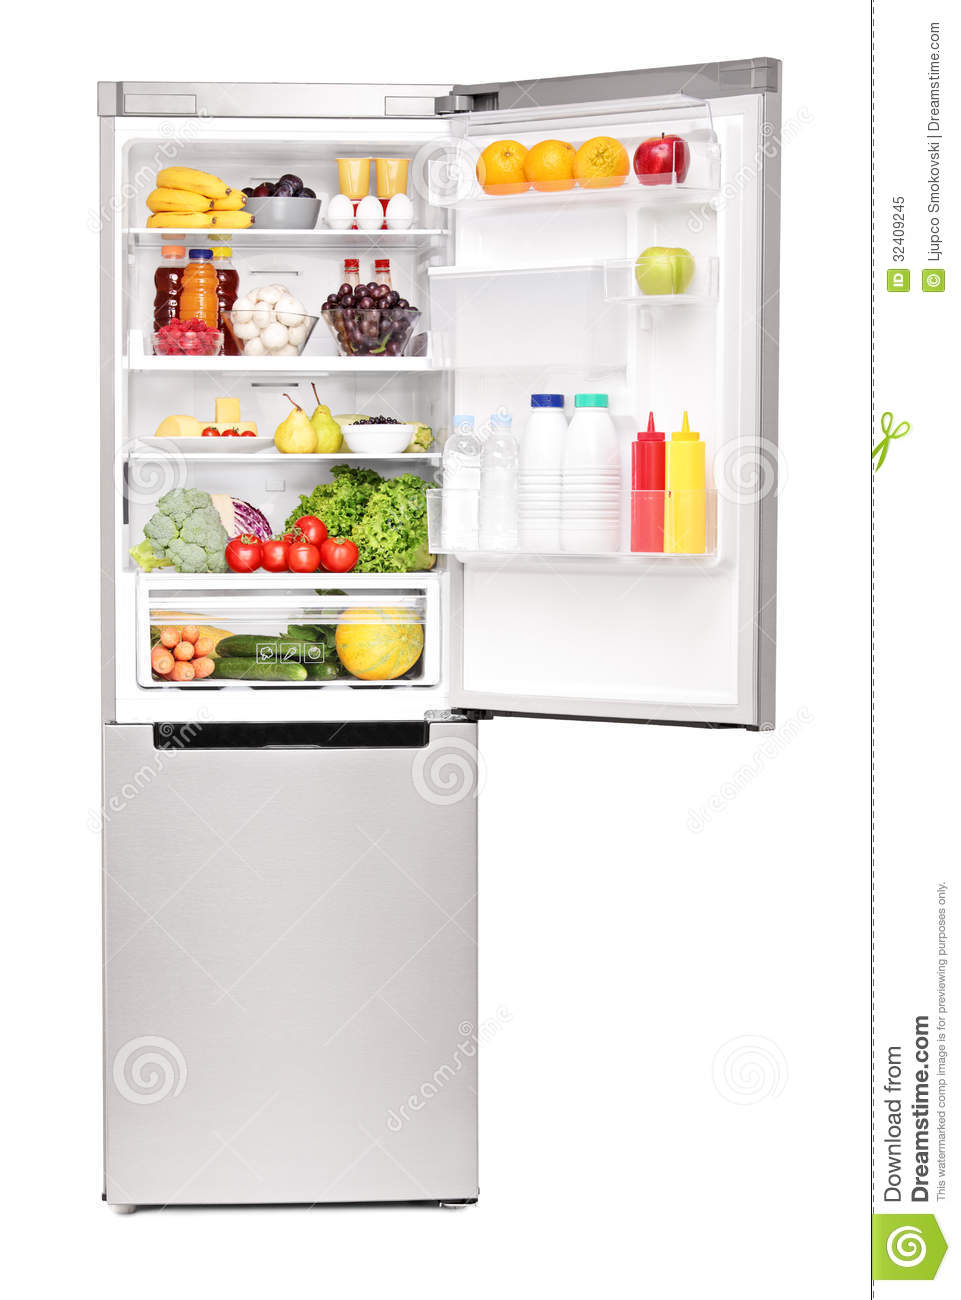 Studio shot of an open fridge full of healthy food products